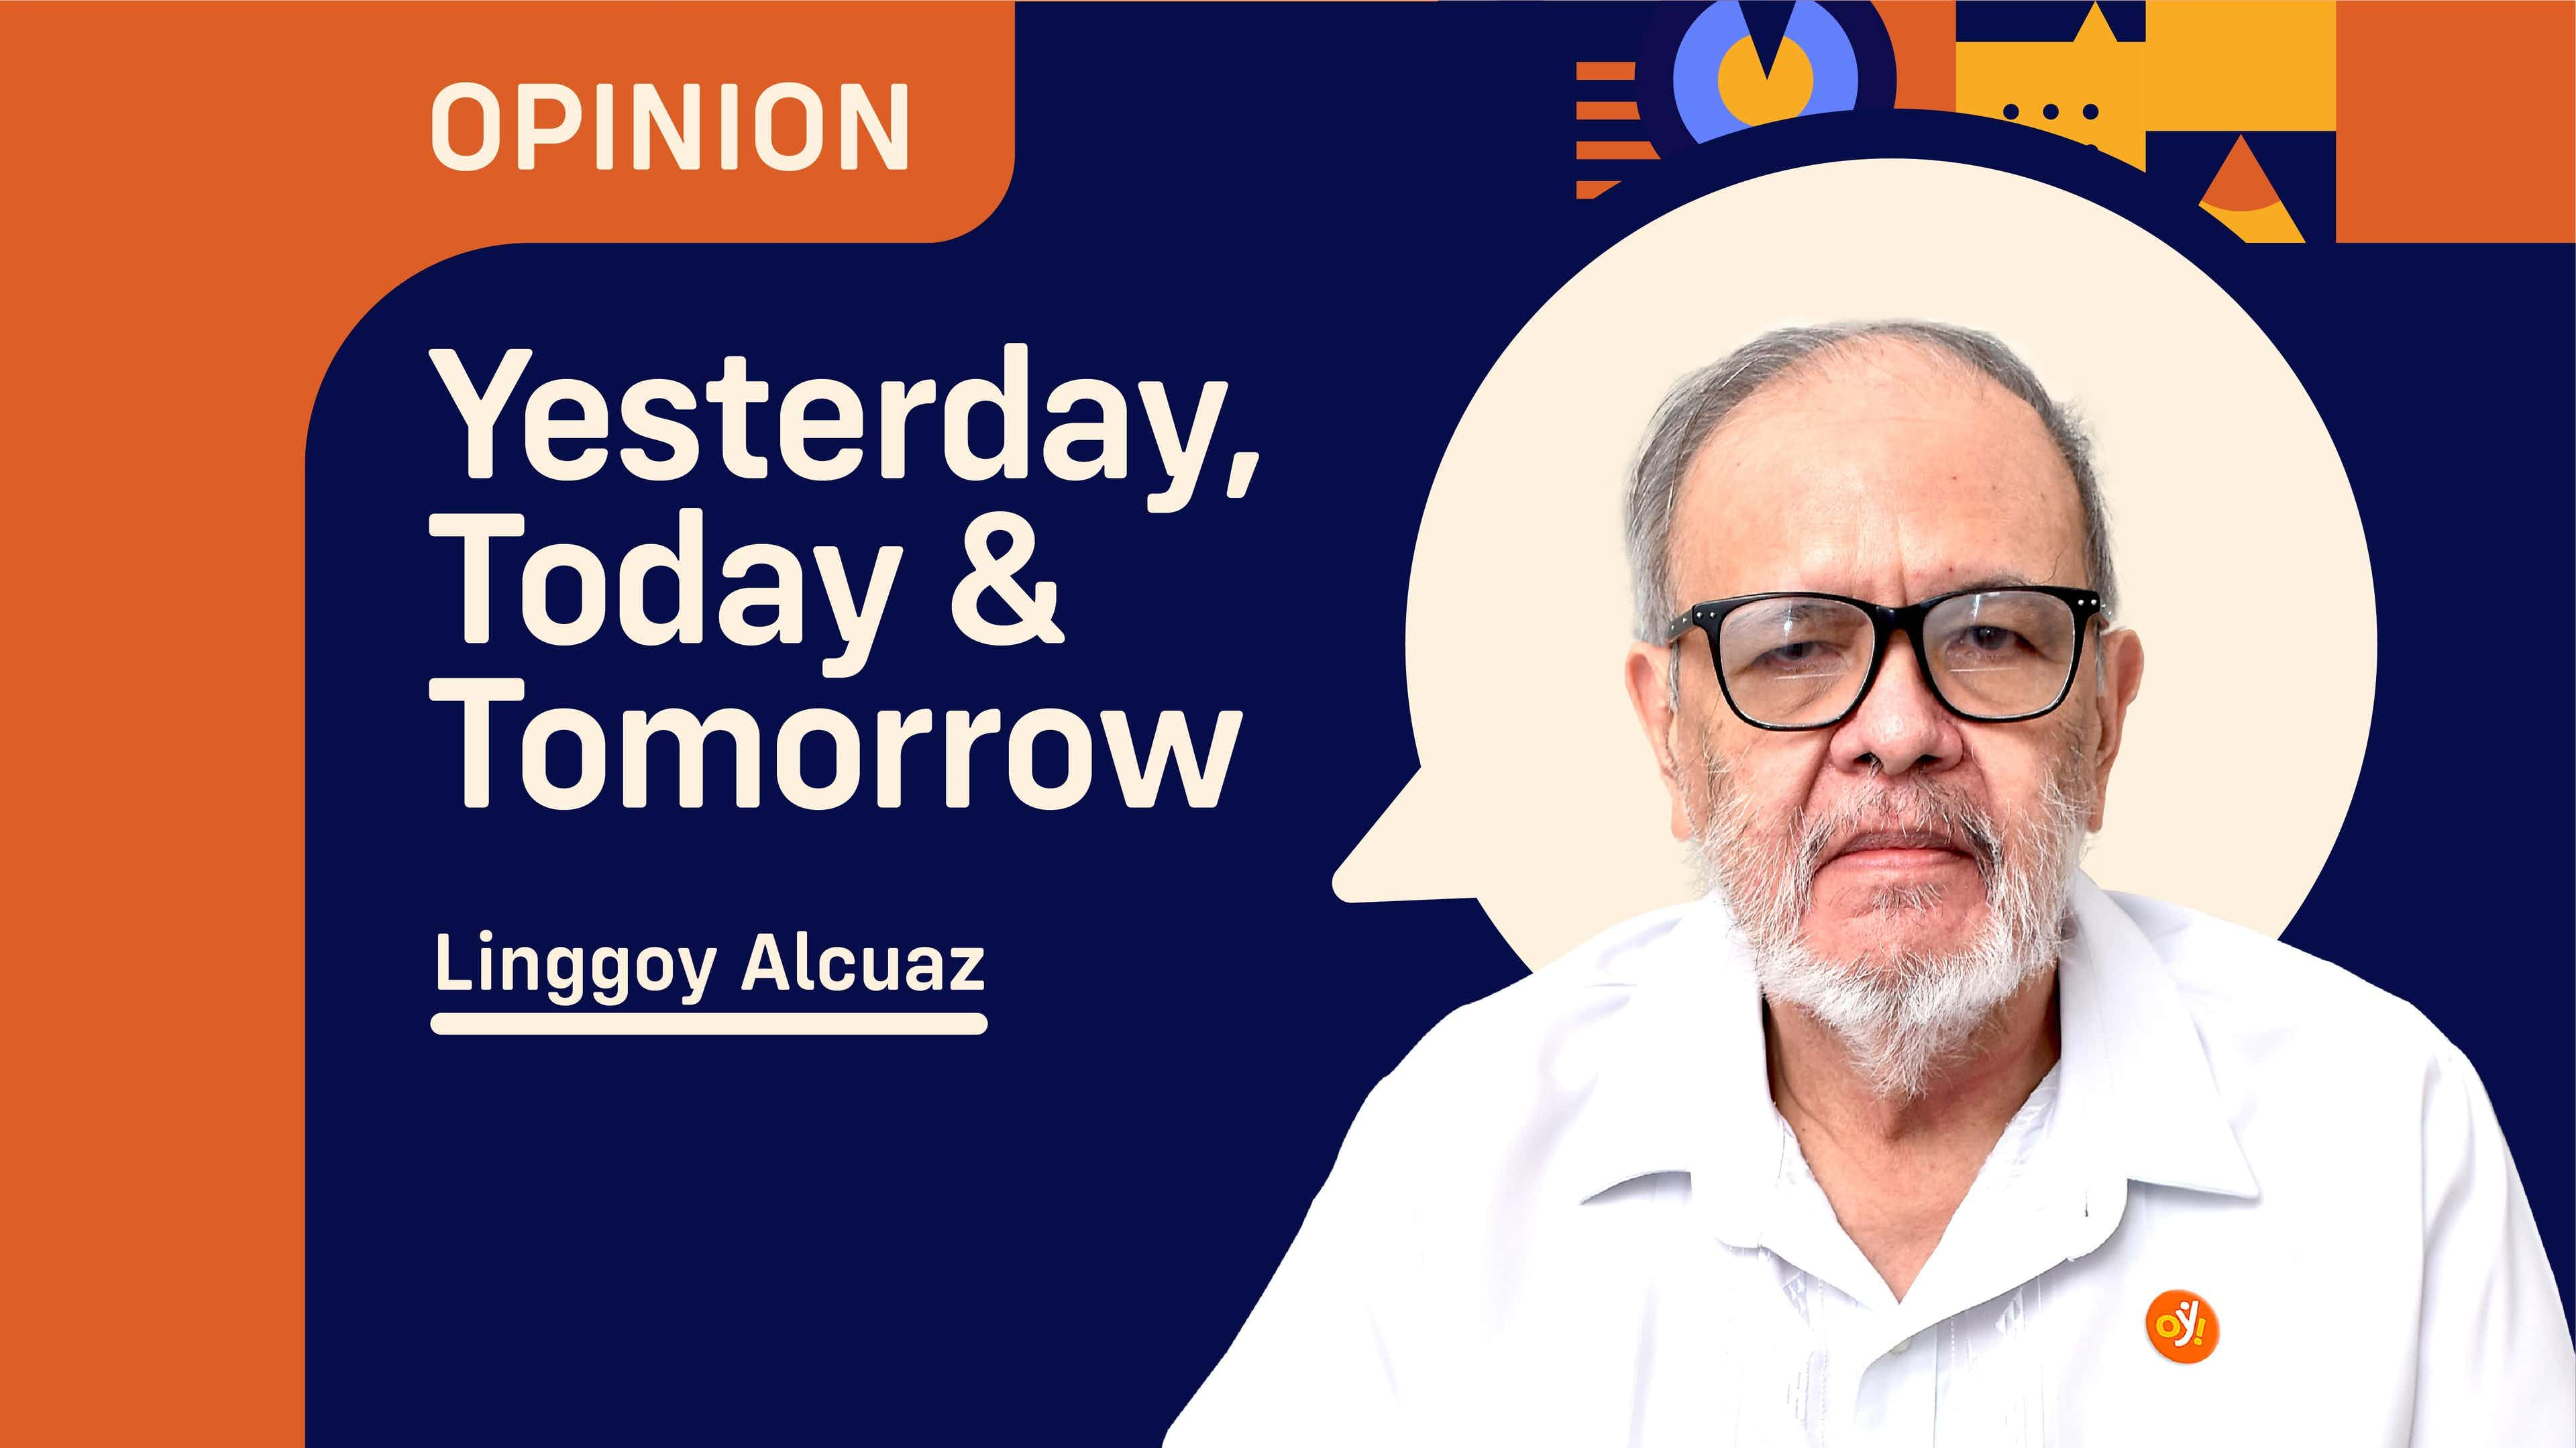 Yesterday, Today & Tomorrow by Linggoy Alcuaz